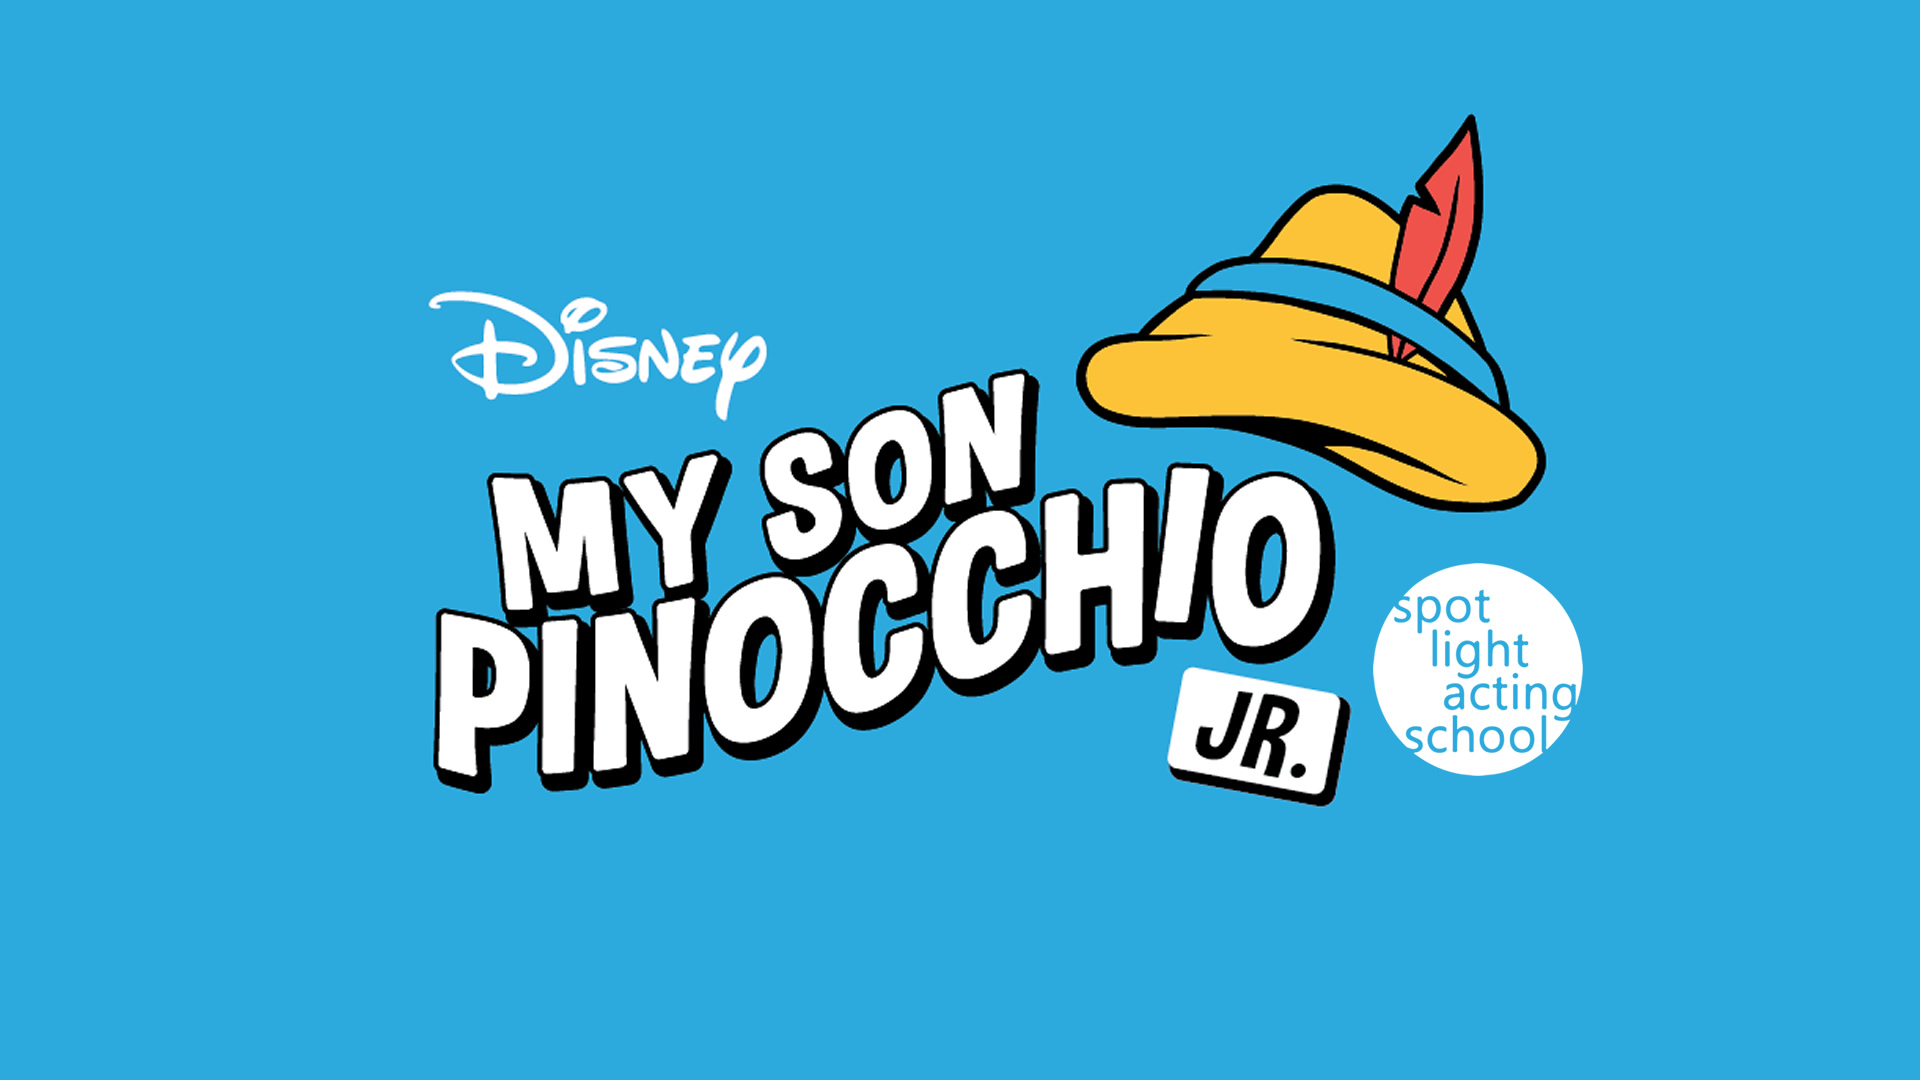 Disney's My Son Pinocchio JR. (Jan:11-13)